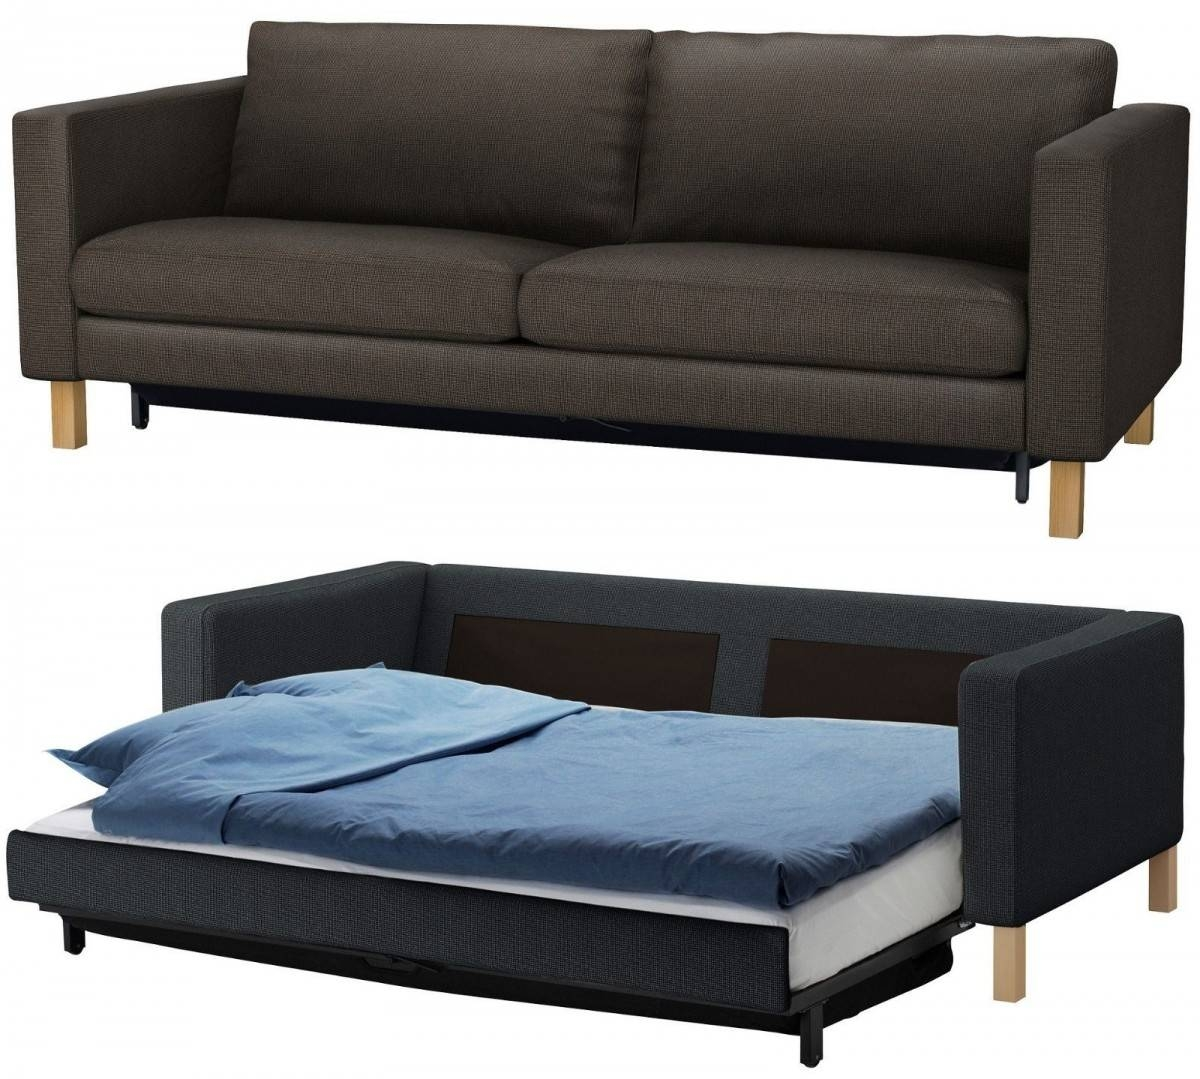 About The Ikea Sleeper Sofa : S3Net – Sectional Sofas Sale for Queen Size Convertible Sofa Beds (Image 2 of 15)